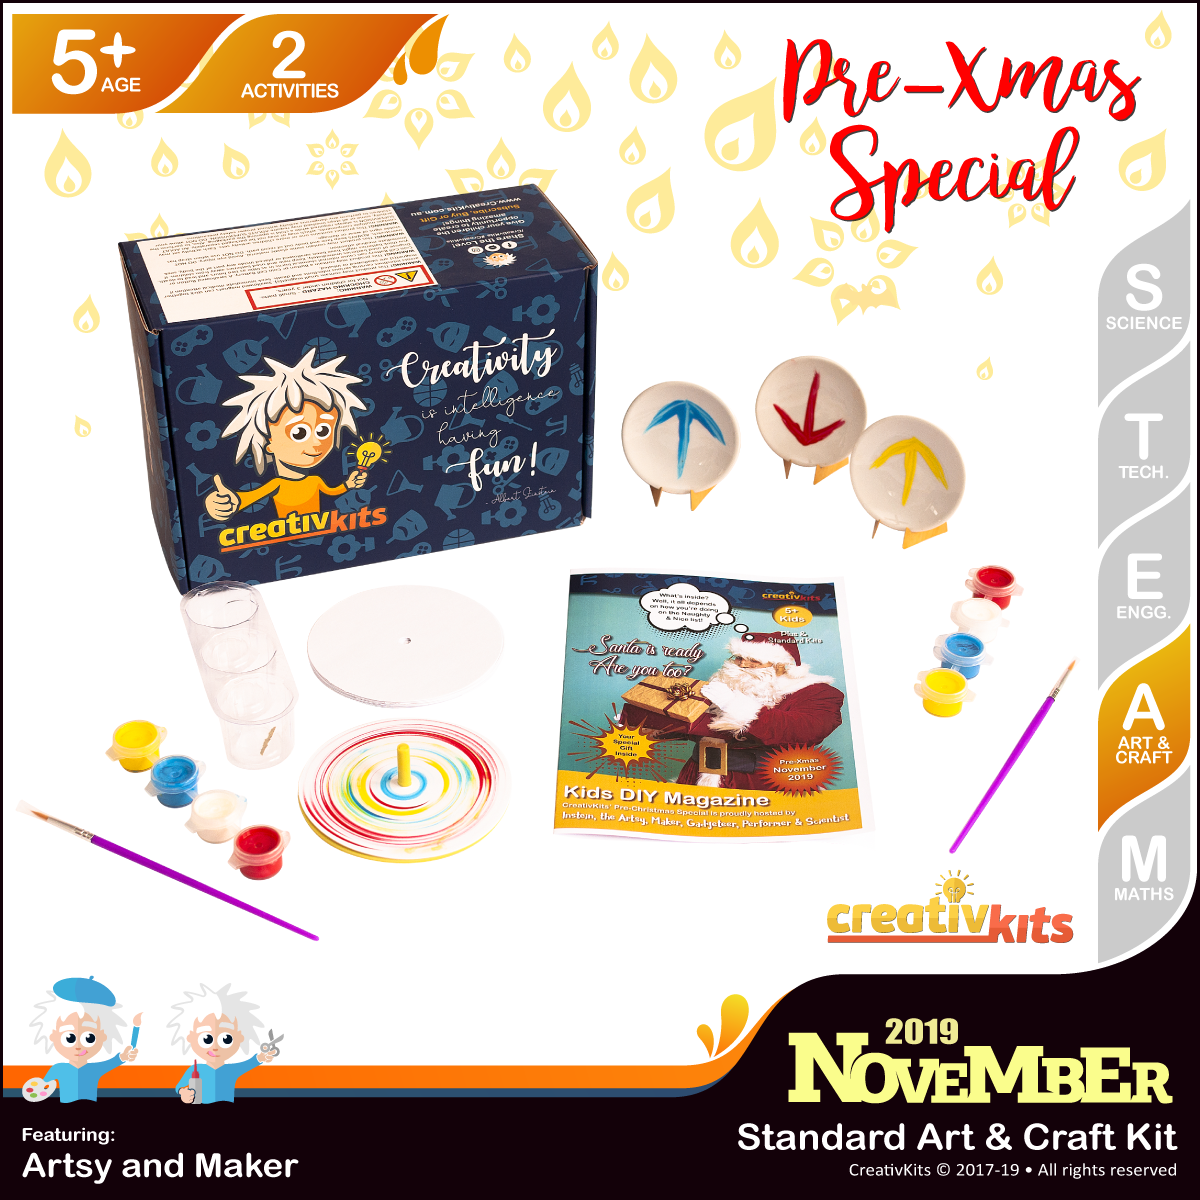 November Standard Art & Craft Kit • Age 5 plus • MYO Spin Art and Mini Plates paintings